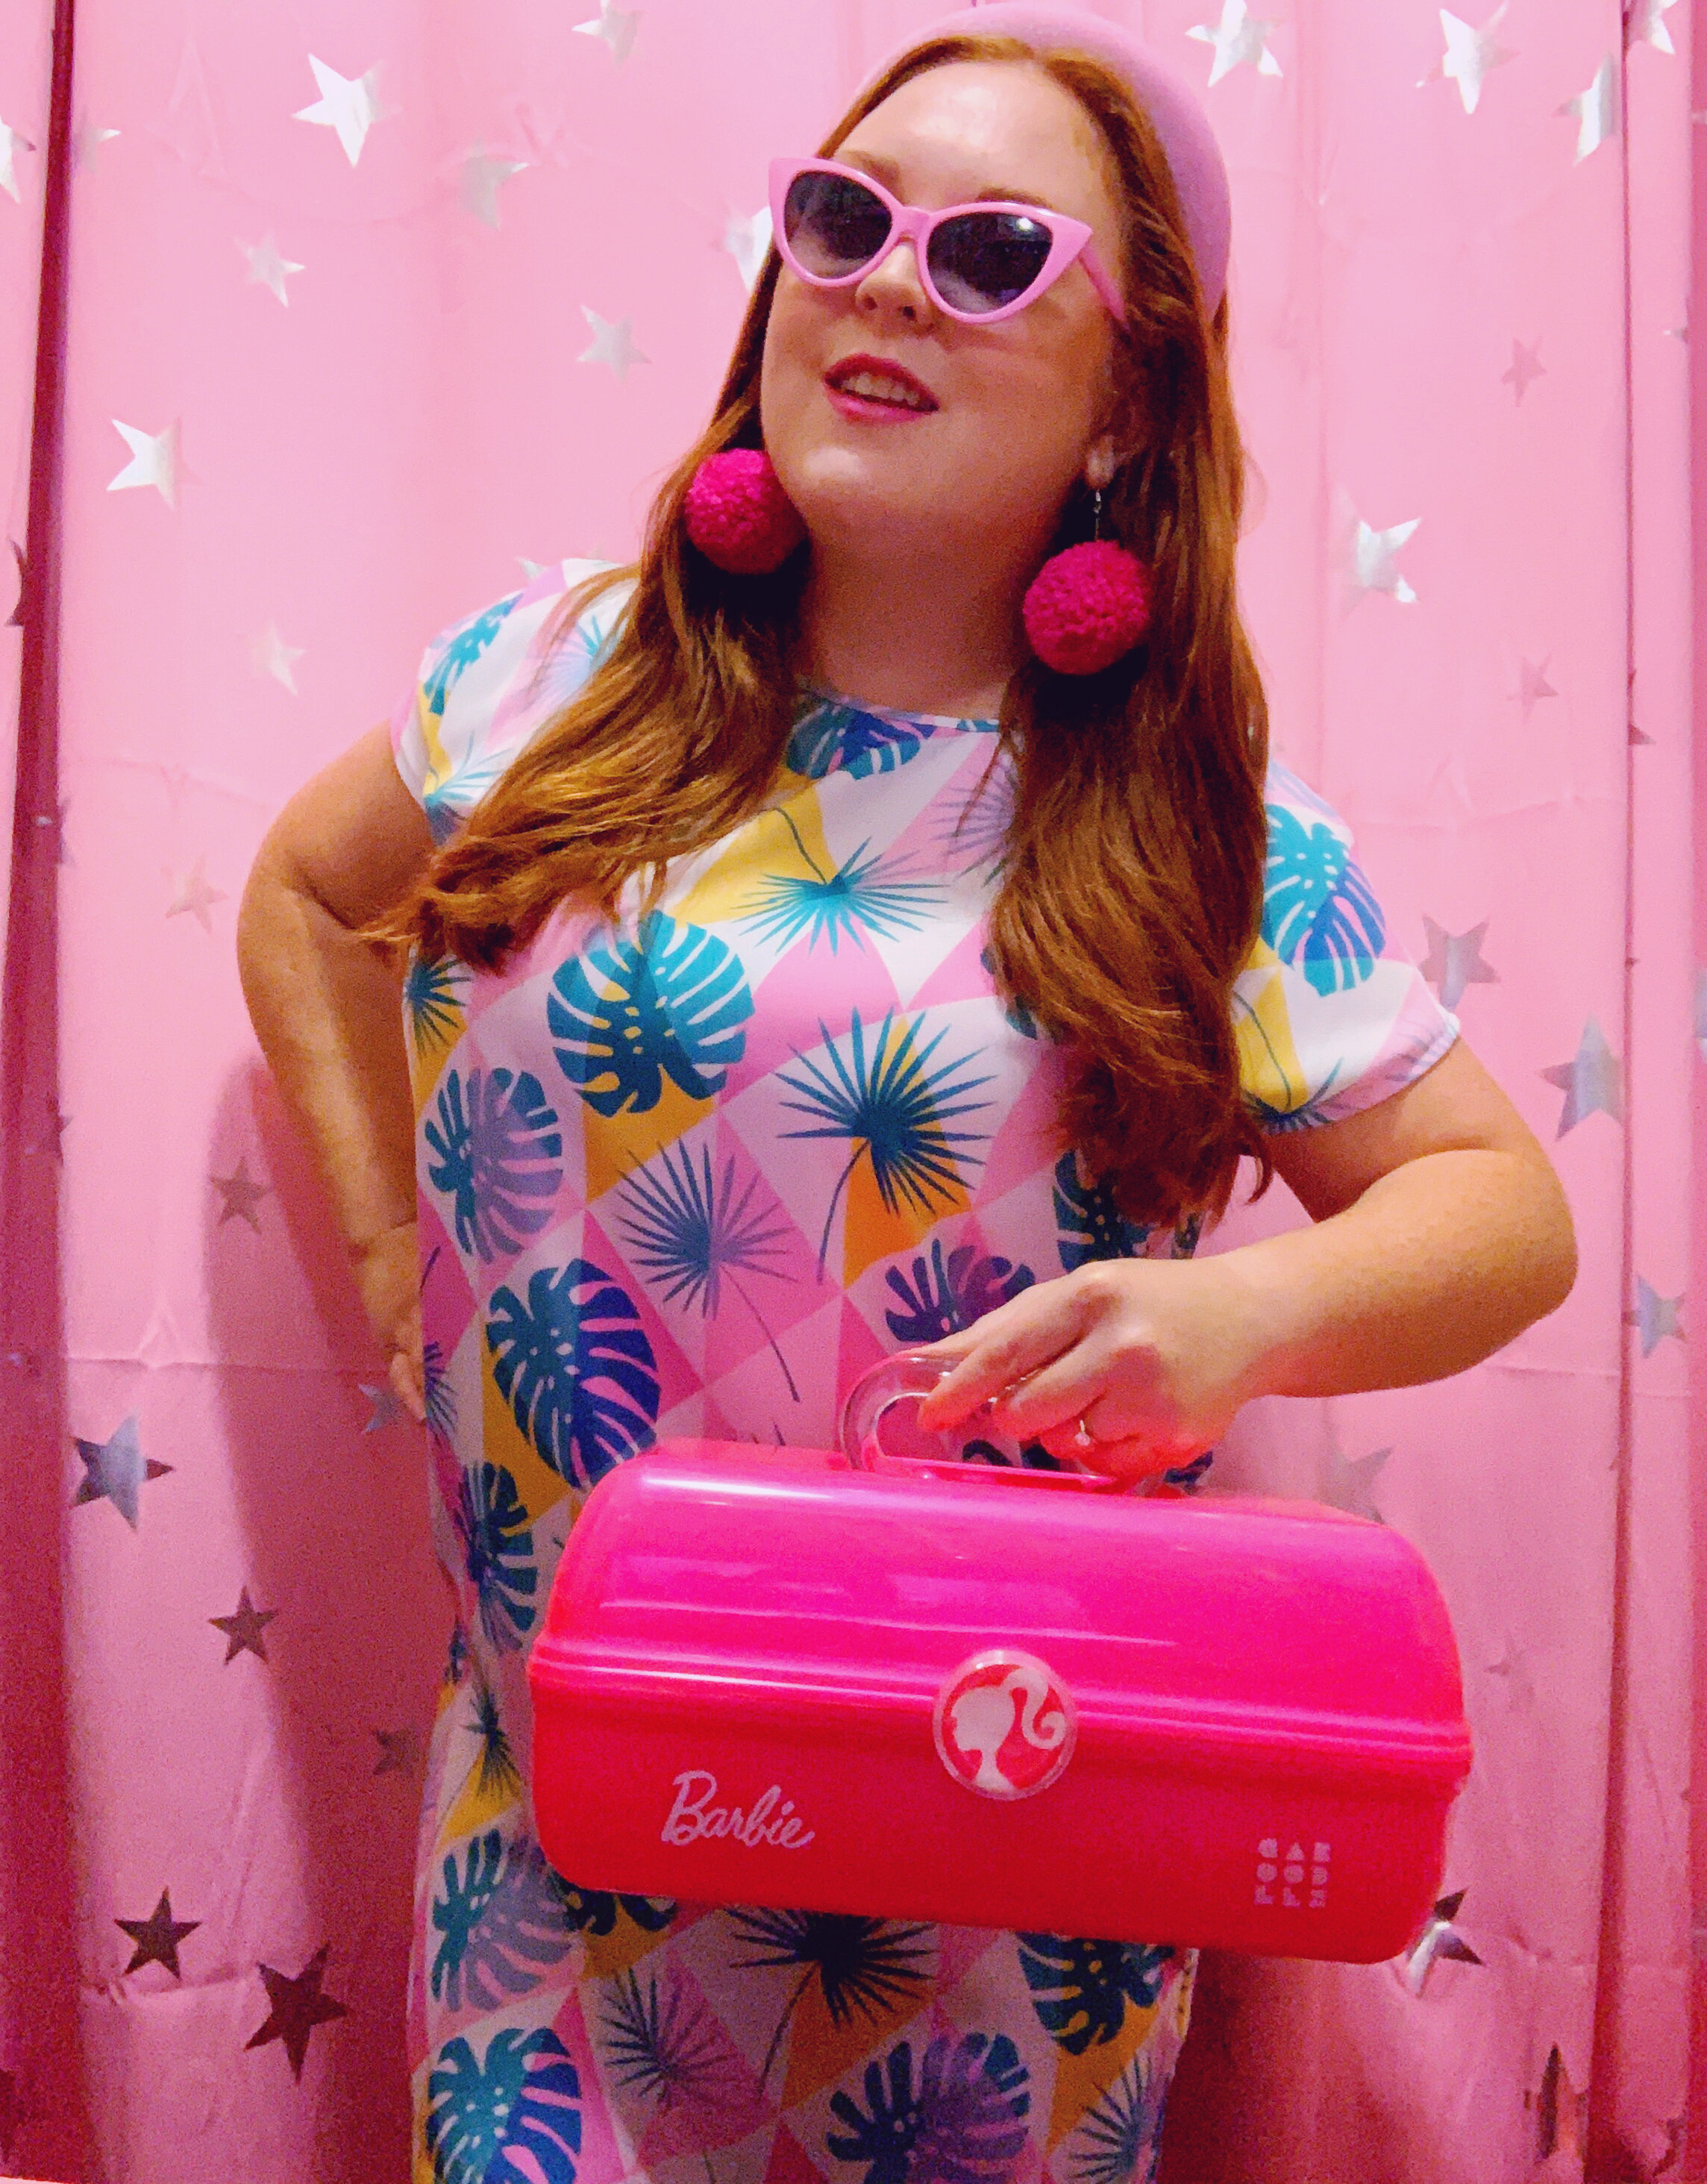 ginger me glam caboodles x barbie collection3.jpg